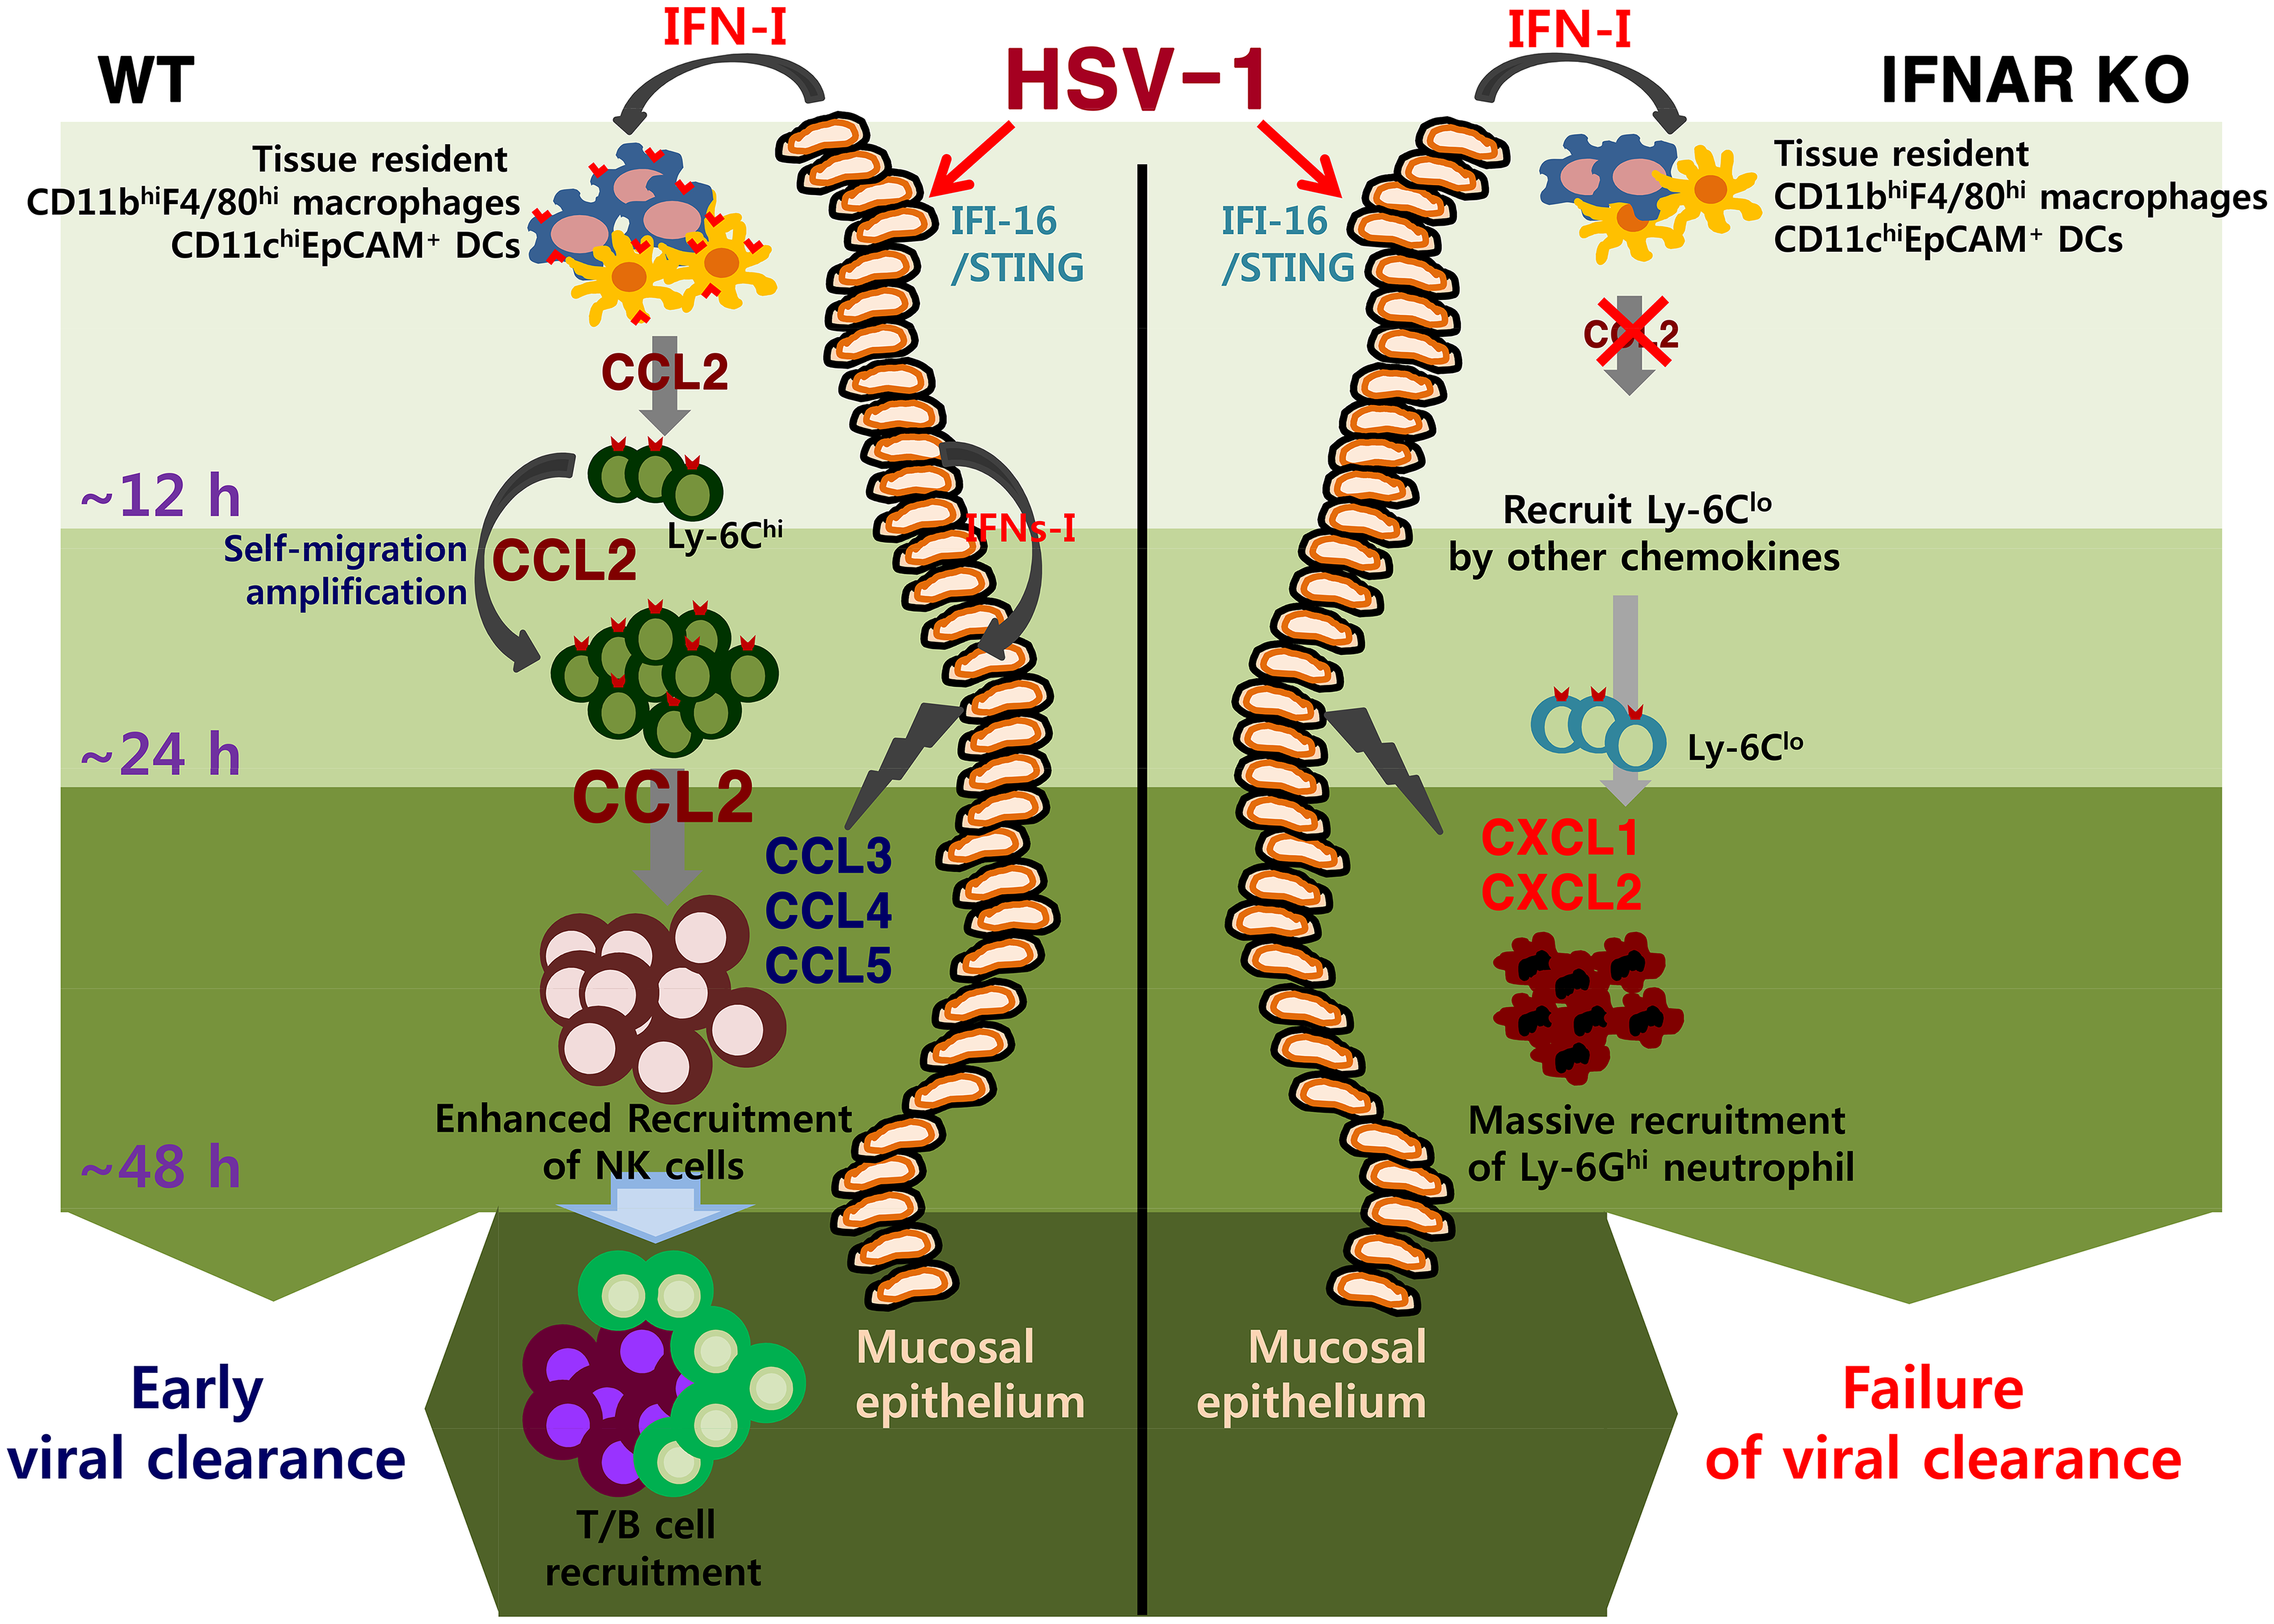 IFN-I–dependent cascade pathway for concerted recruitment of CD11b<sup>+</sup>Ly-6C<sup>hi</sup> monocytes and NK cells in mucosal tissues following HSV-1 infection.